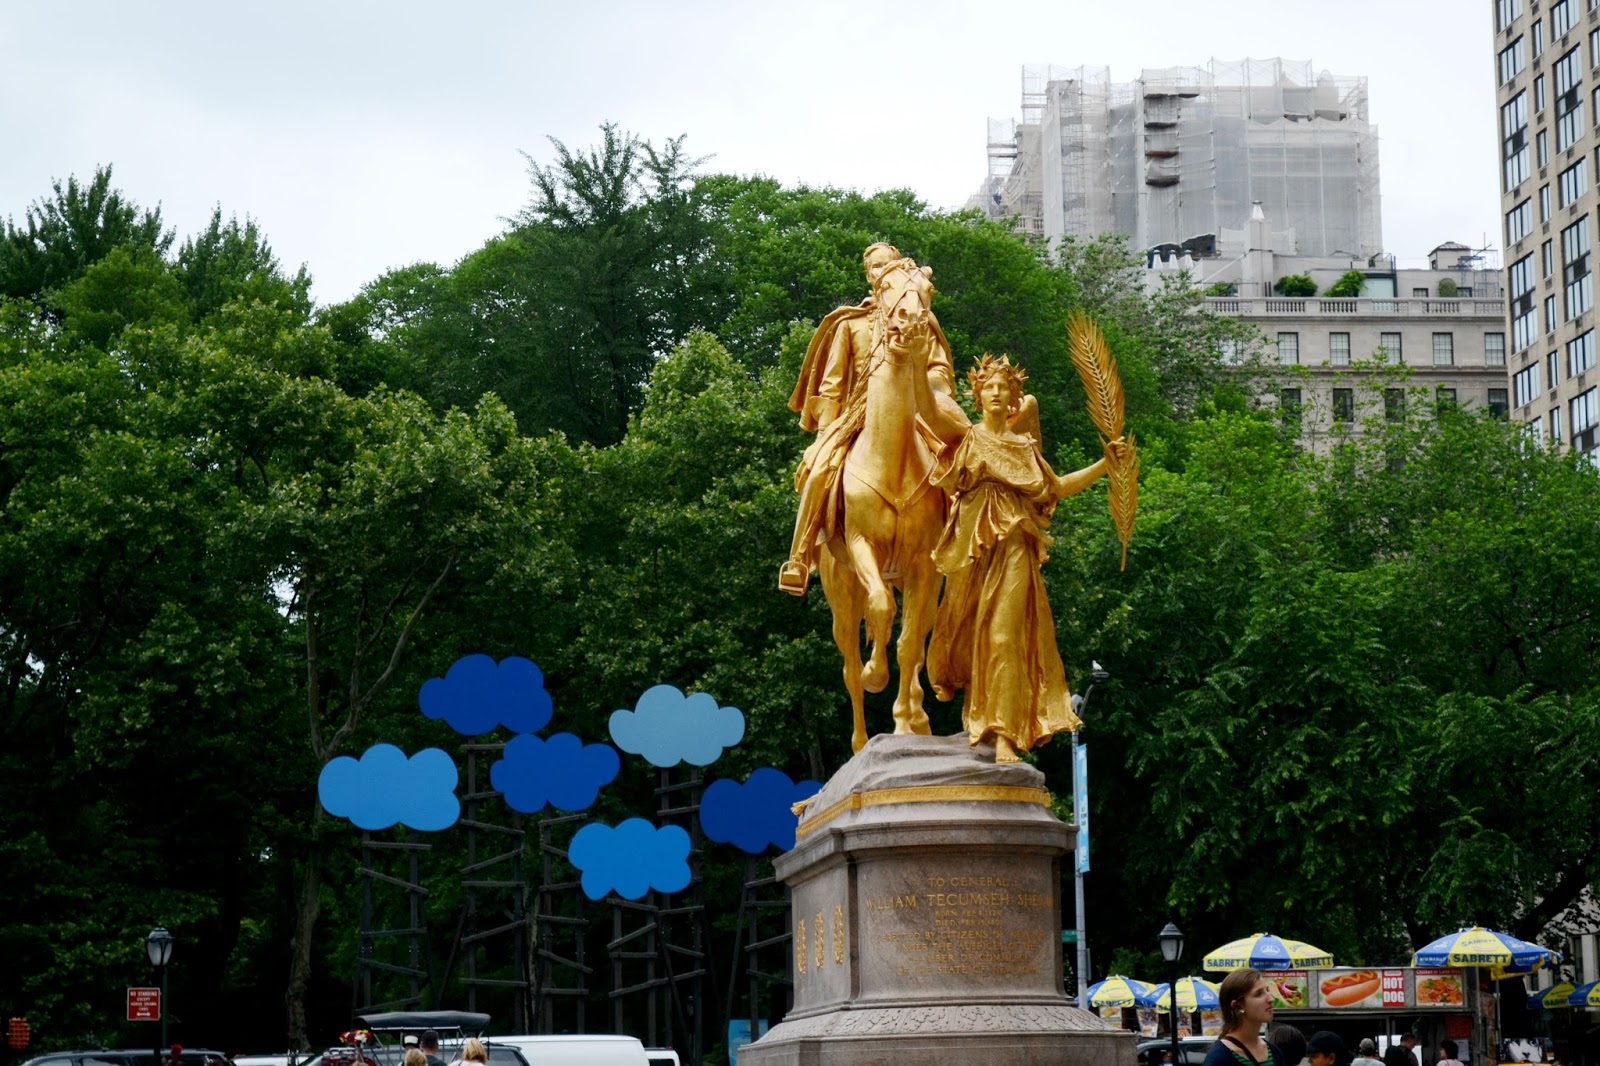 grand army plaza, new york, central park, statue, city